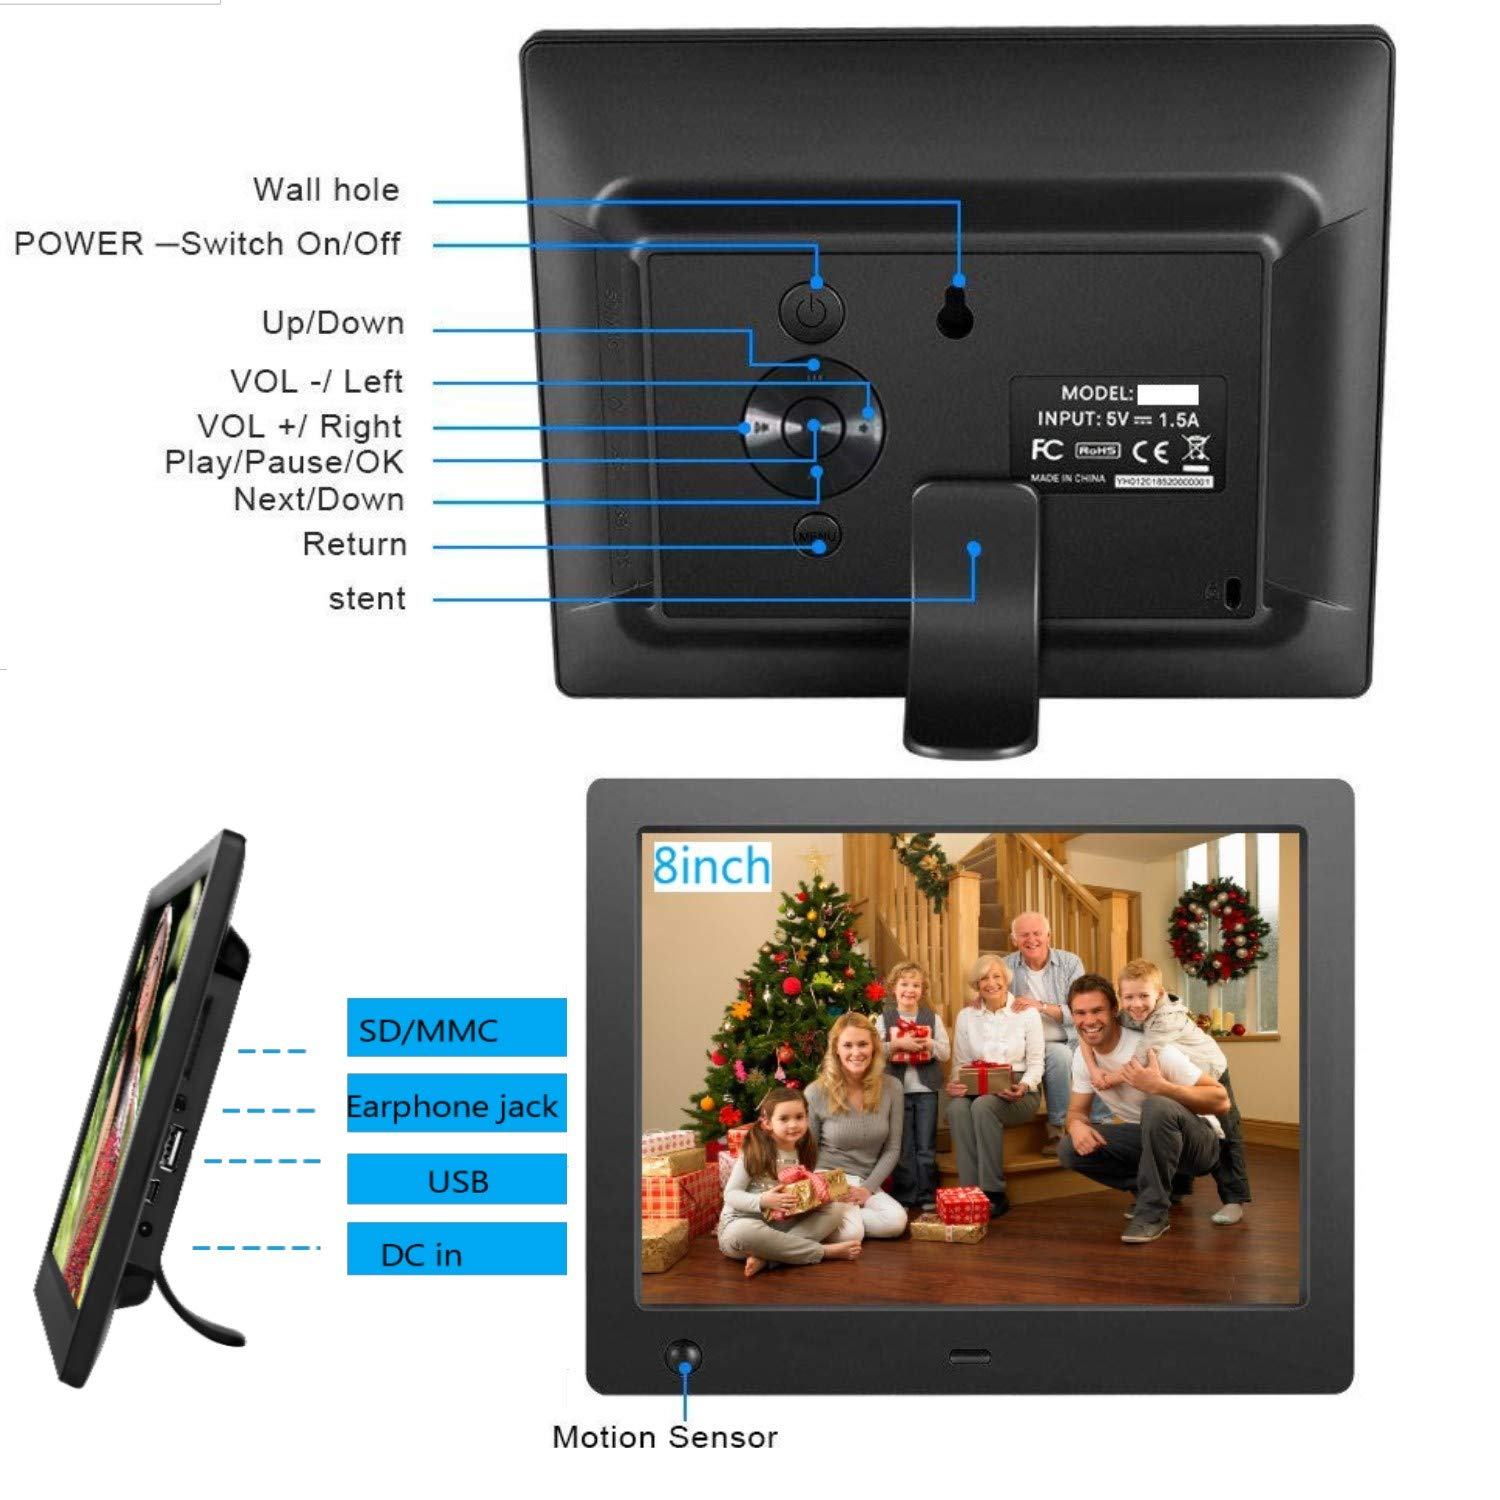 Digital Picture Frame 8 inch, Digital Photo Frame Video Player with Motion Sensor Smart Electronics Picture Frame High Resolution 1024x768 IPS LCD/1080P 720P /Stereo/MP3/Calendar/Time/Remote Control by Quality Life (Image #7)